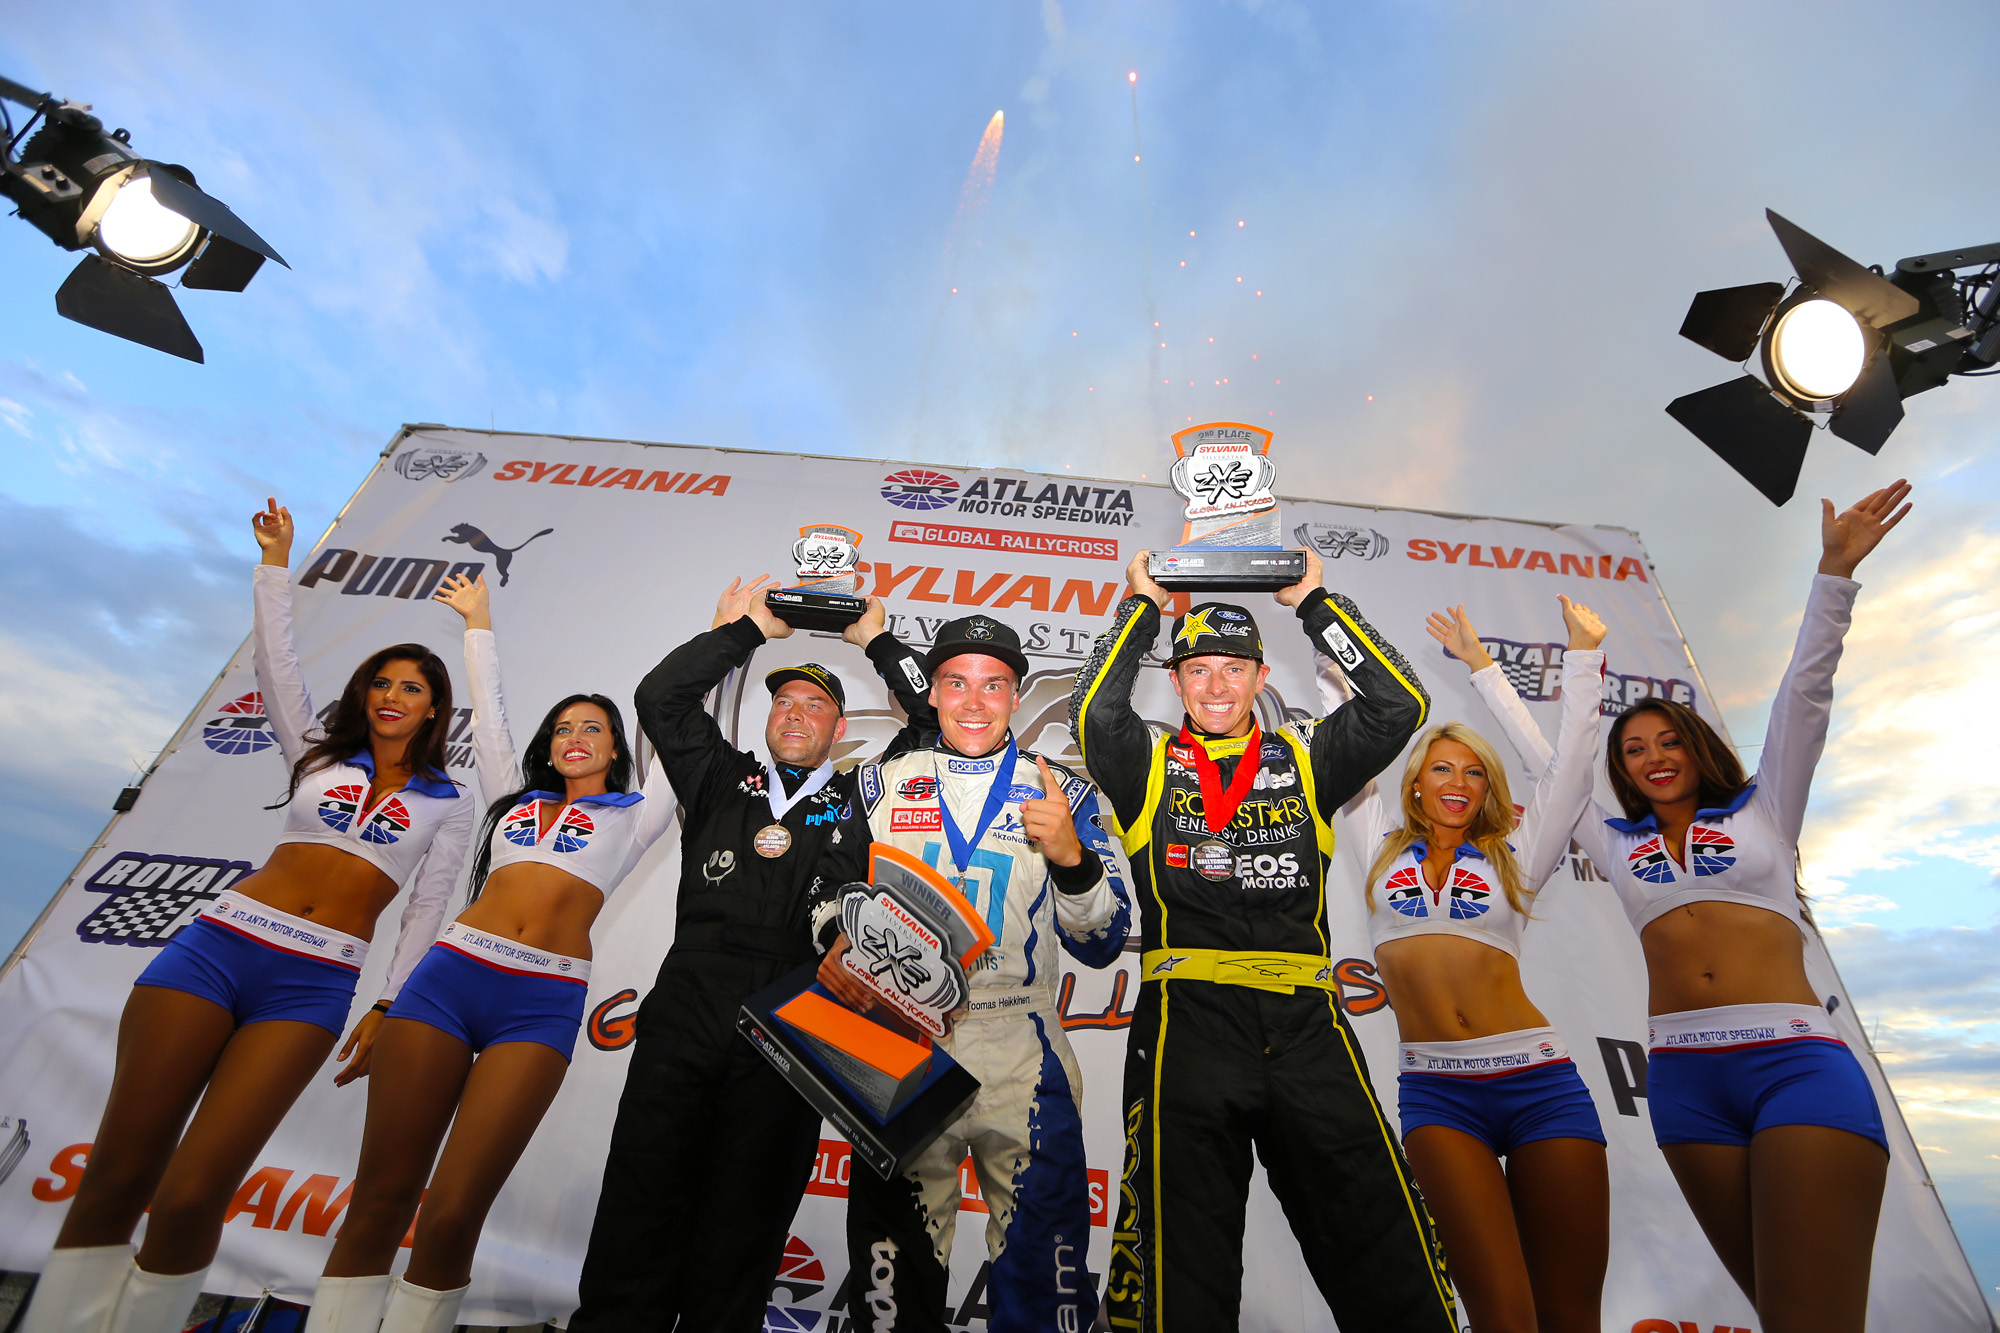 HEIKKINEN CONTINUES HOT STREAK BY BECOMING FIRST DRIVER TO WIN FIVE STRAIGHT GLOBAL RALLYCROSS EVENTS